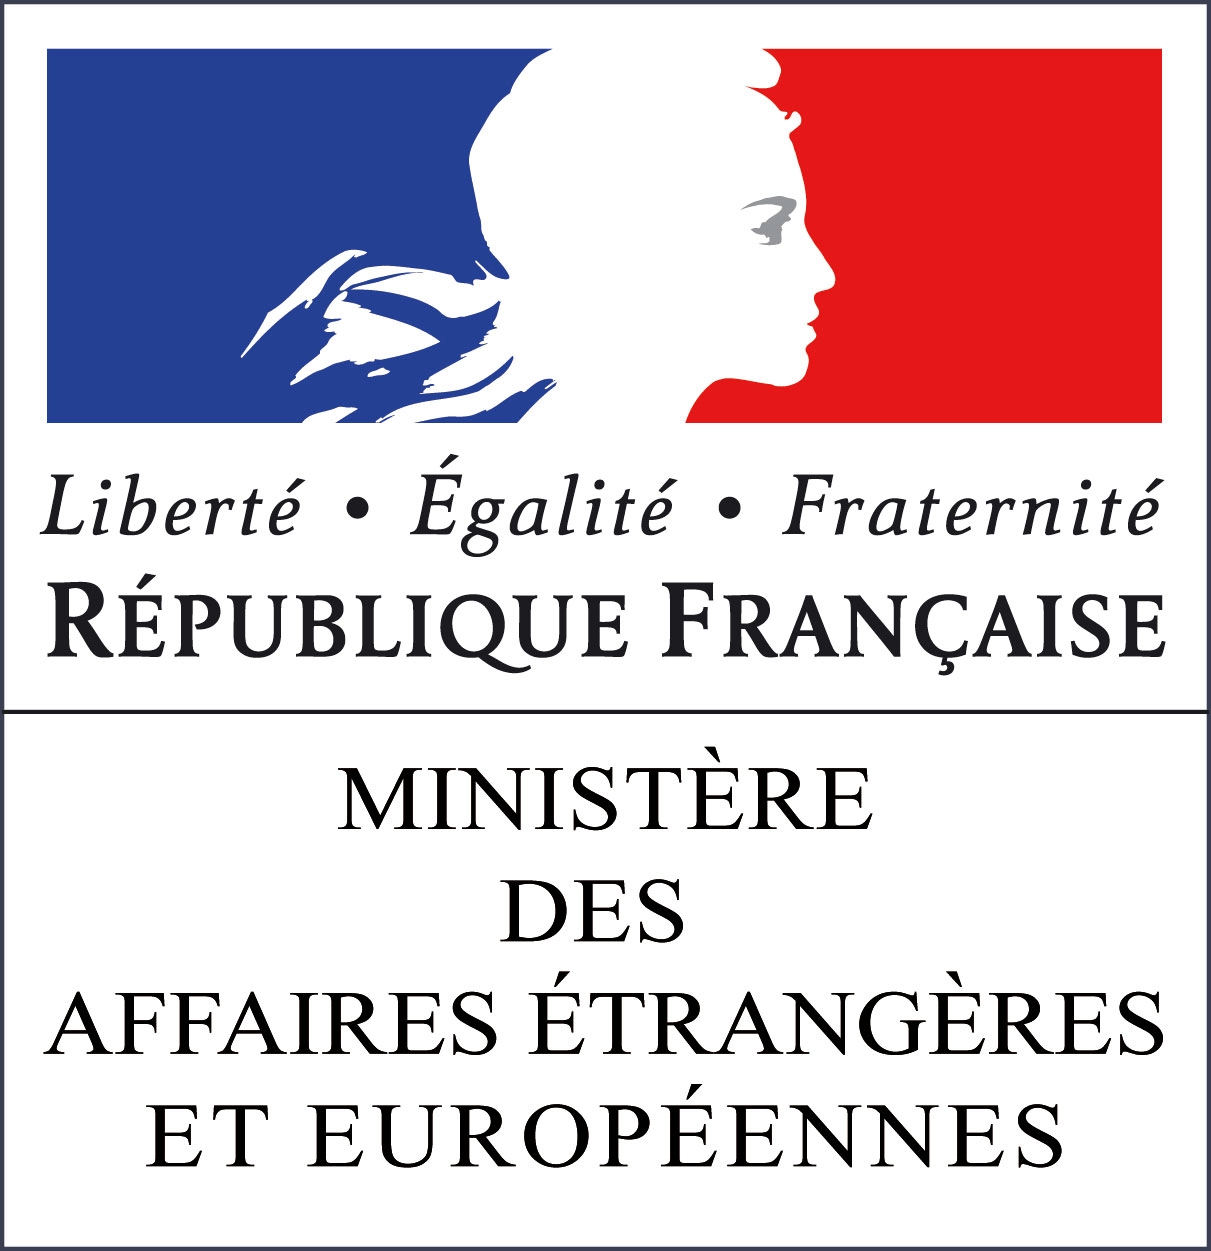 Ministere-Affaires-Etrangeres-Europeennes.png